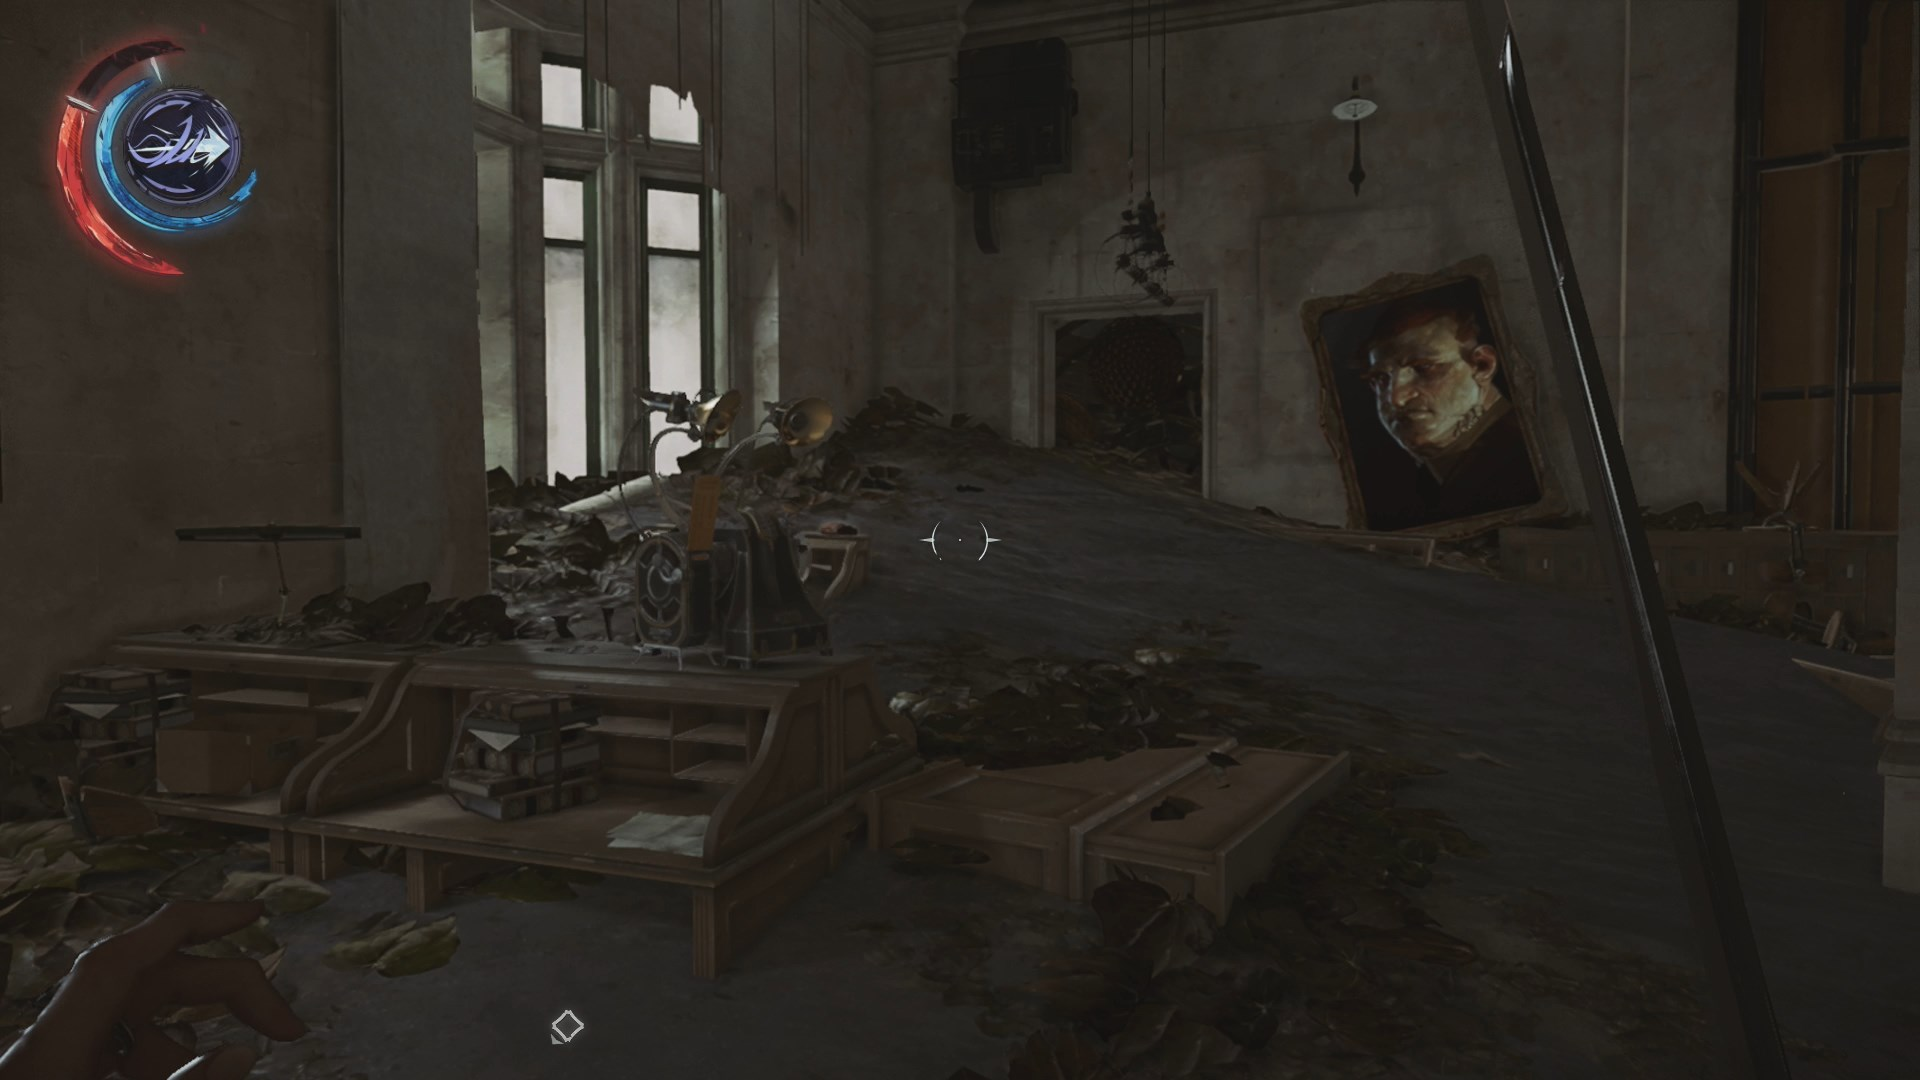 Dishonored 2 Mission 6 Painting #3